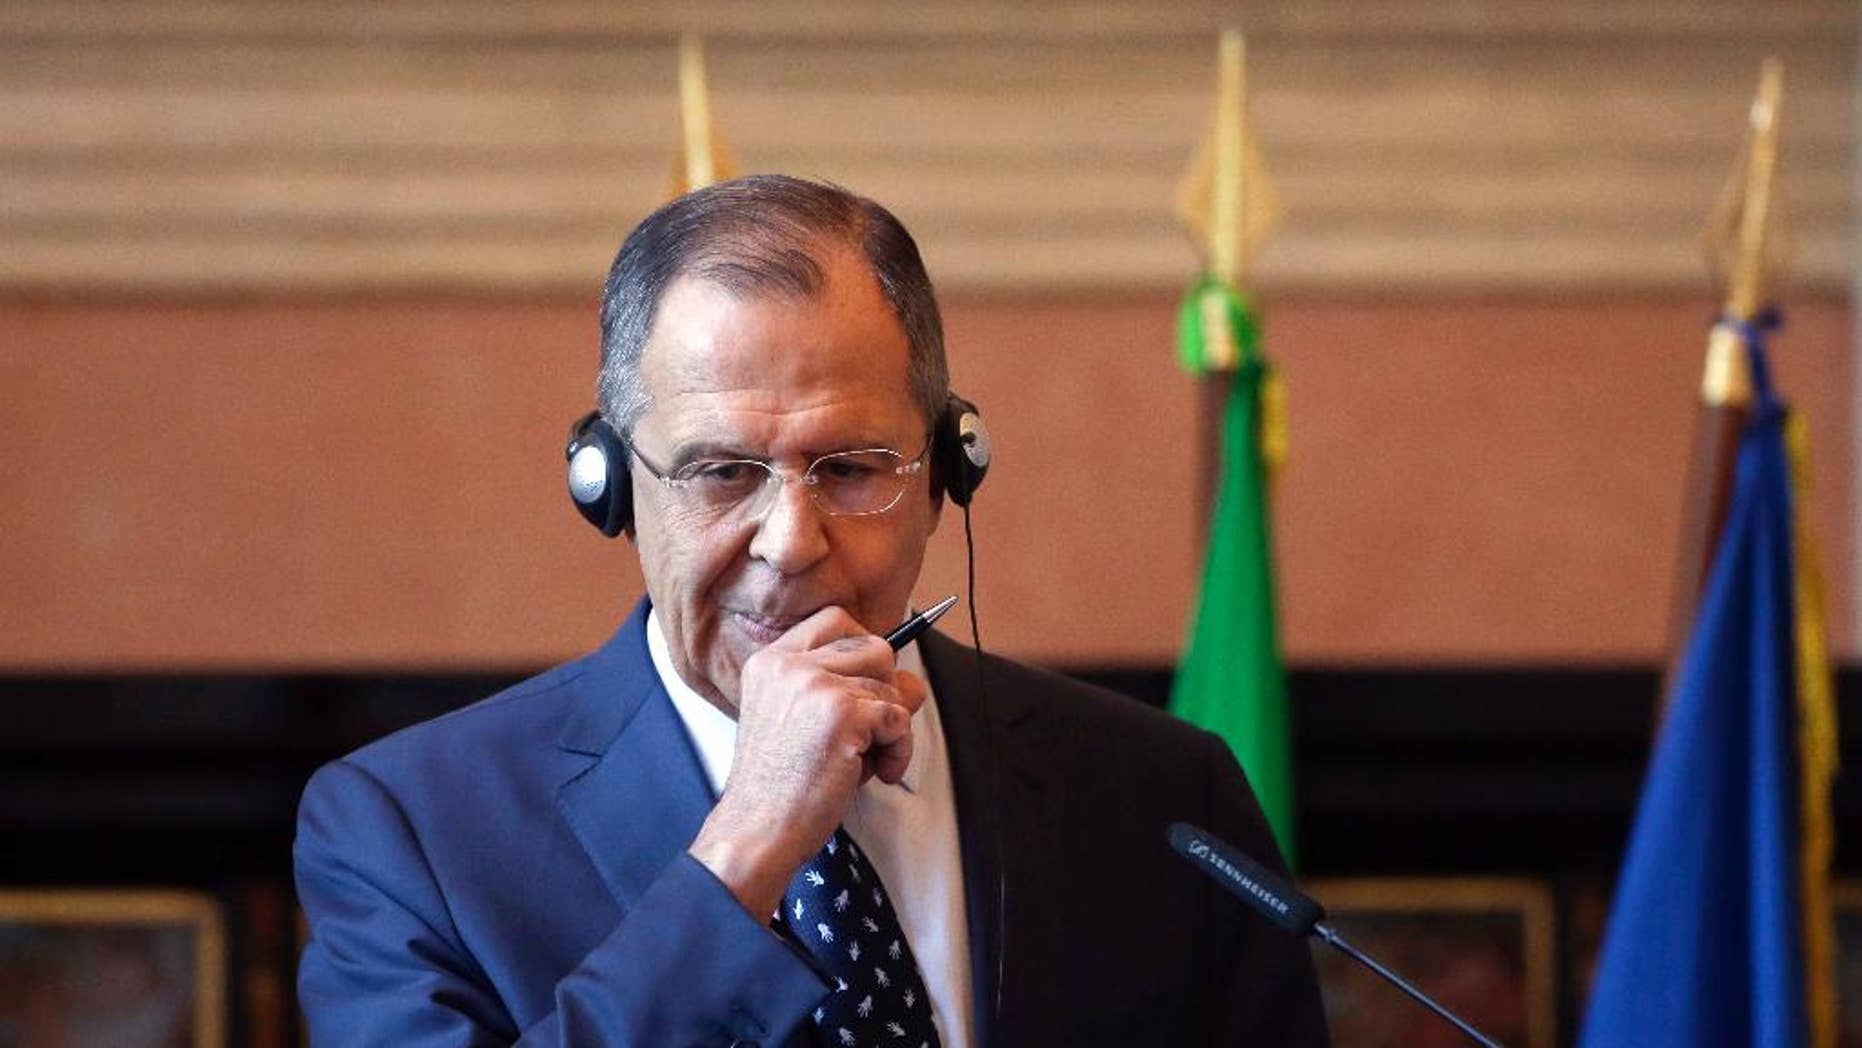 Russian Foreign Minister Sergey Lavrov meets the media during a news conference at the Mediterranean Dialogues Conference Forum, in Rome, Friday, Dec. 11, 2015. (AP Photo/Alessandra Tarantino)